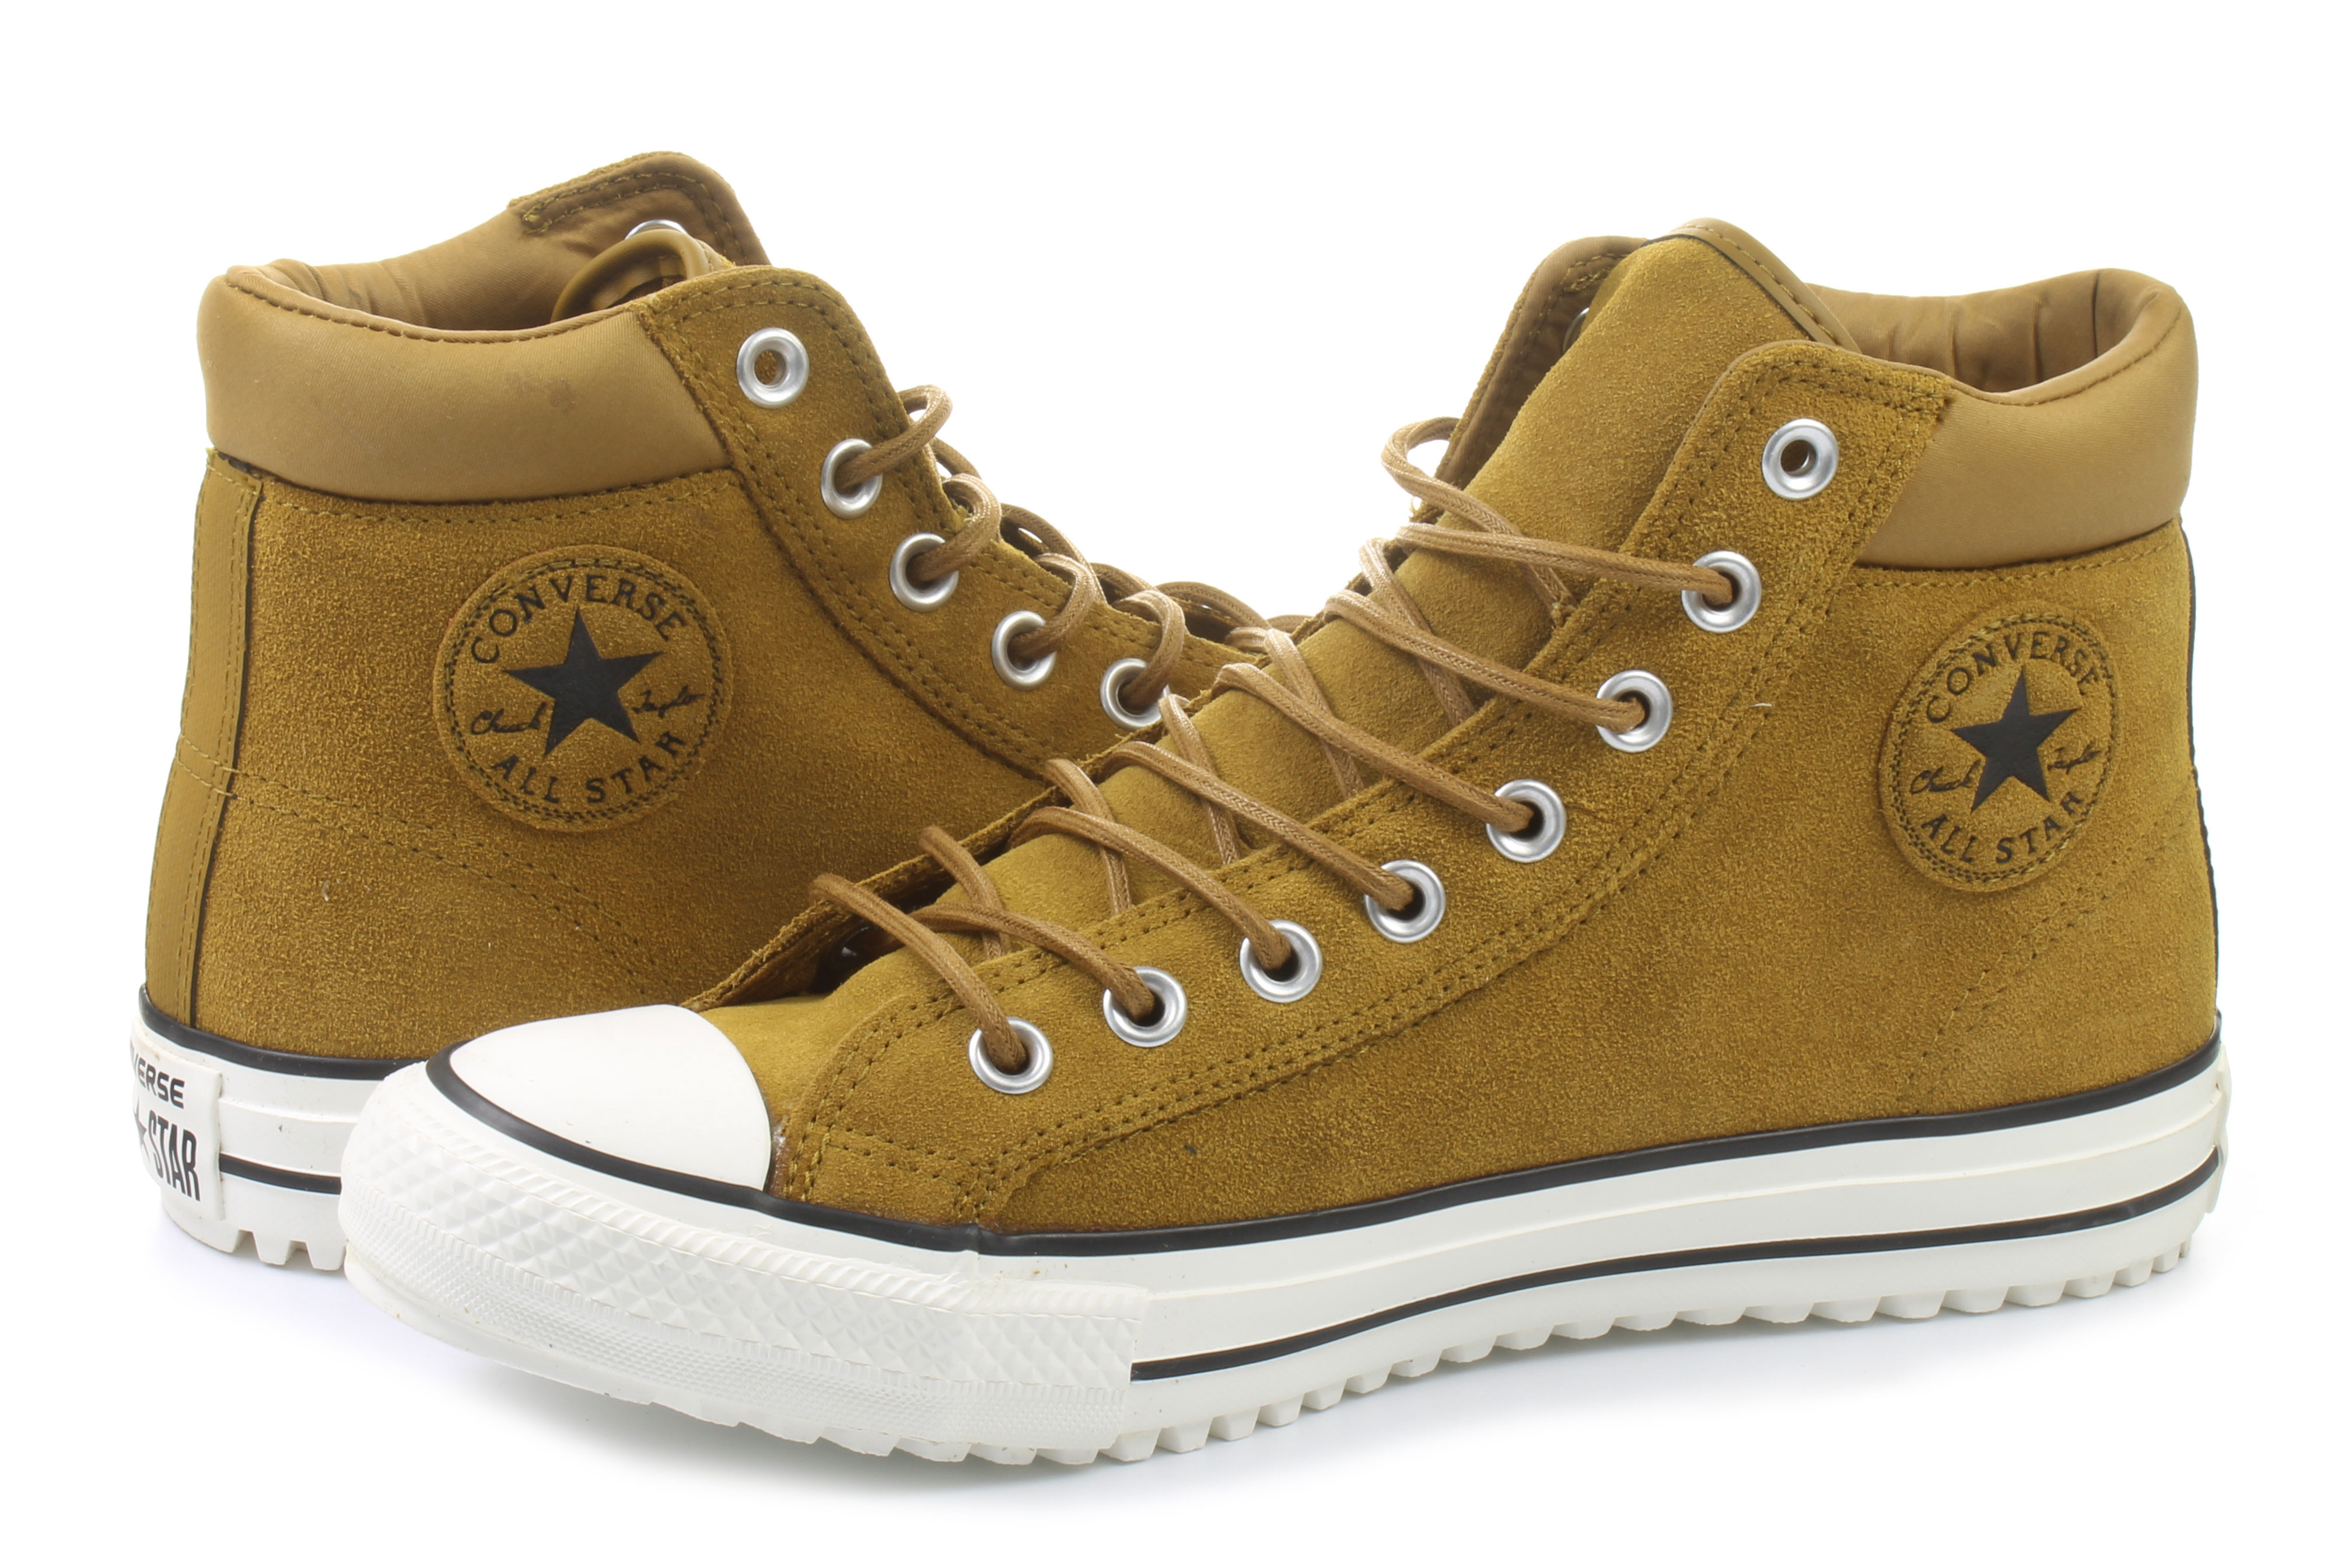 70924aa87712 Converse Sneakers - Chuck Taylor All Star Converse Boot Pc ...